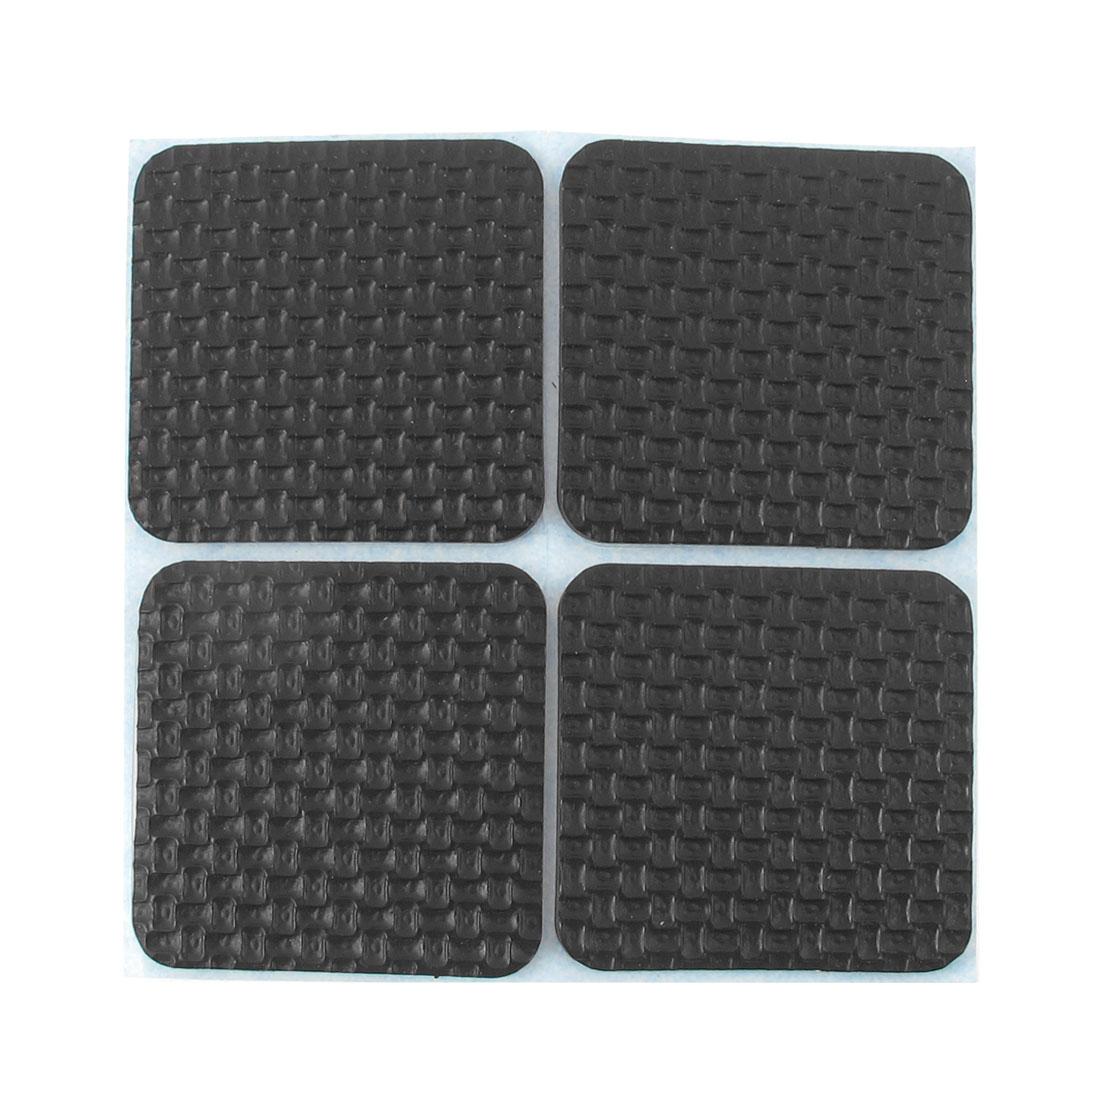 Self Adhesive Furniture Desk Table Leg Mat Cover Pad Floor Protector Black 4pcs